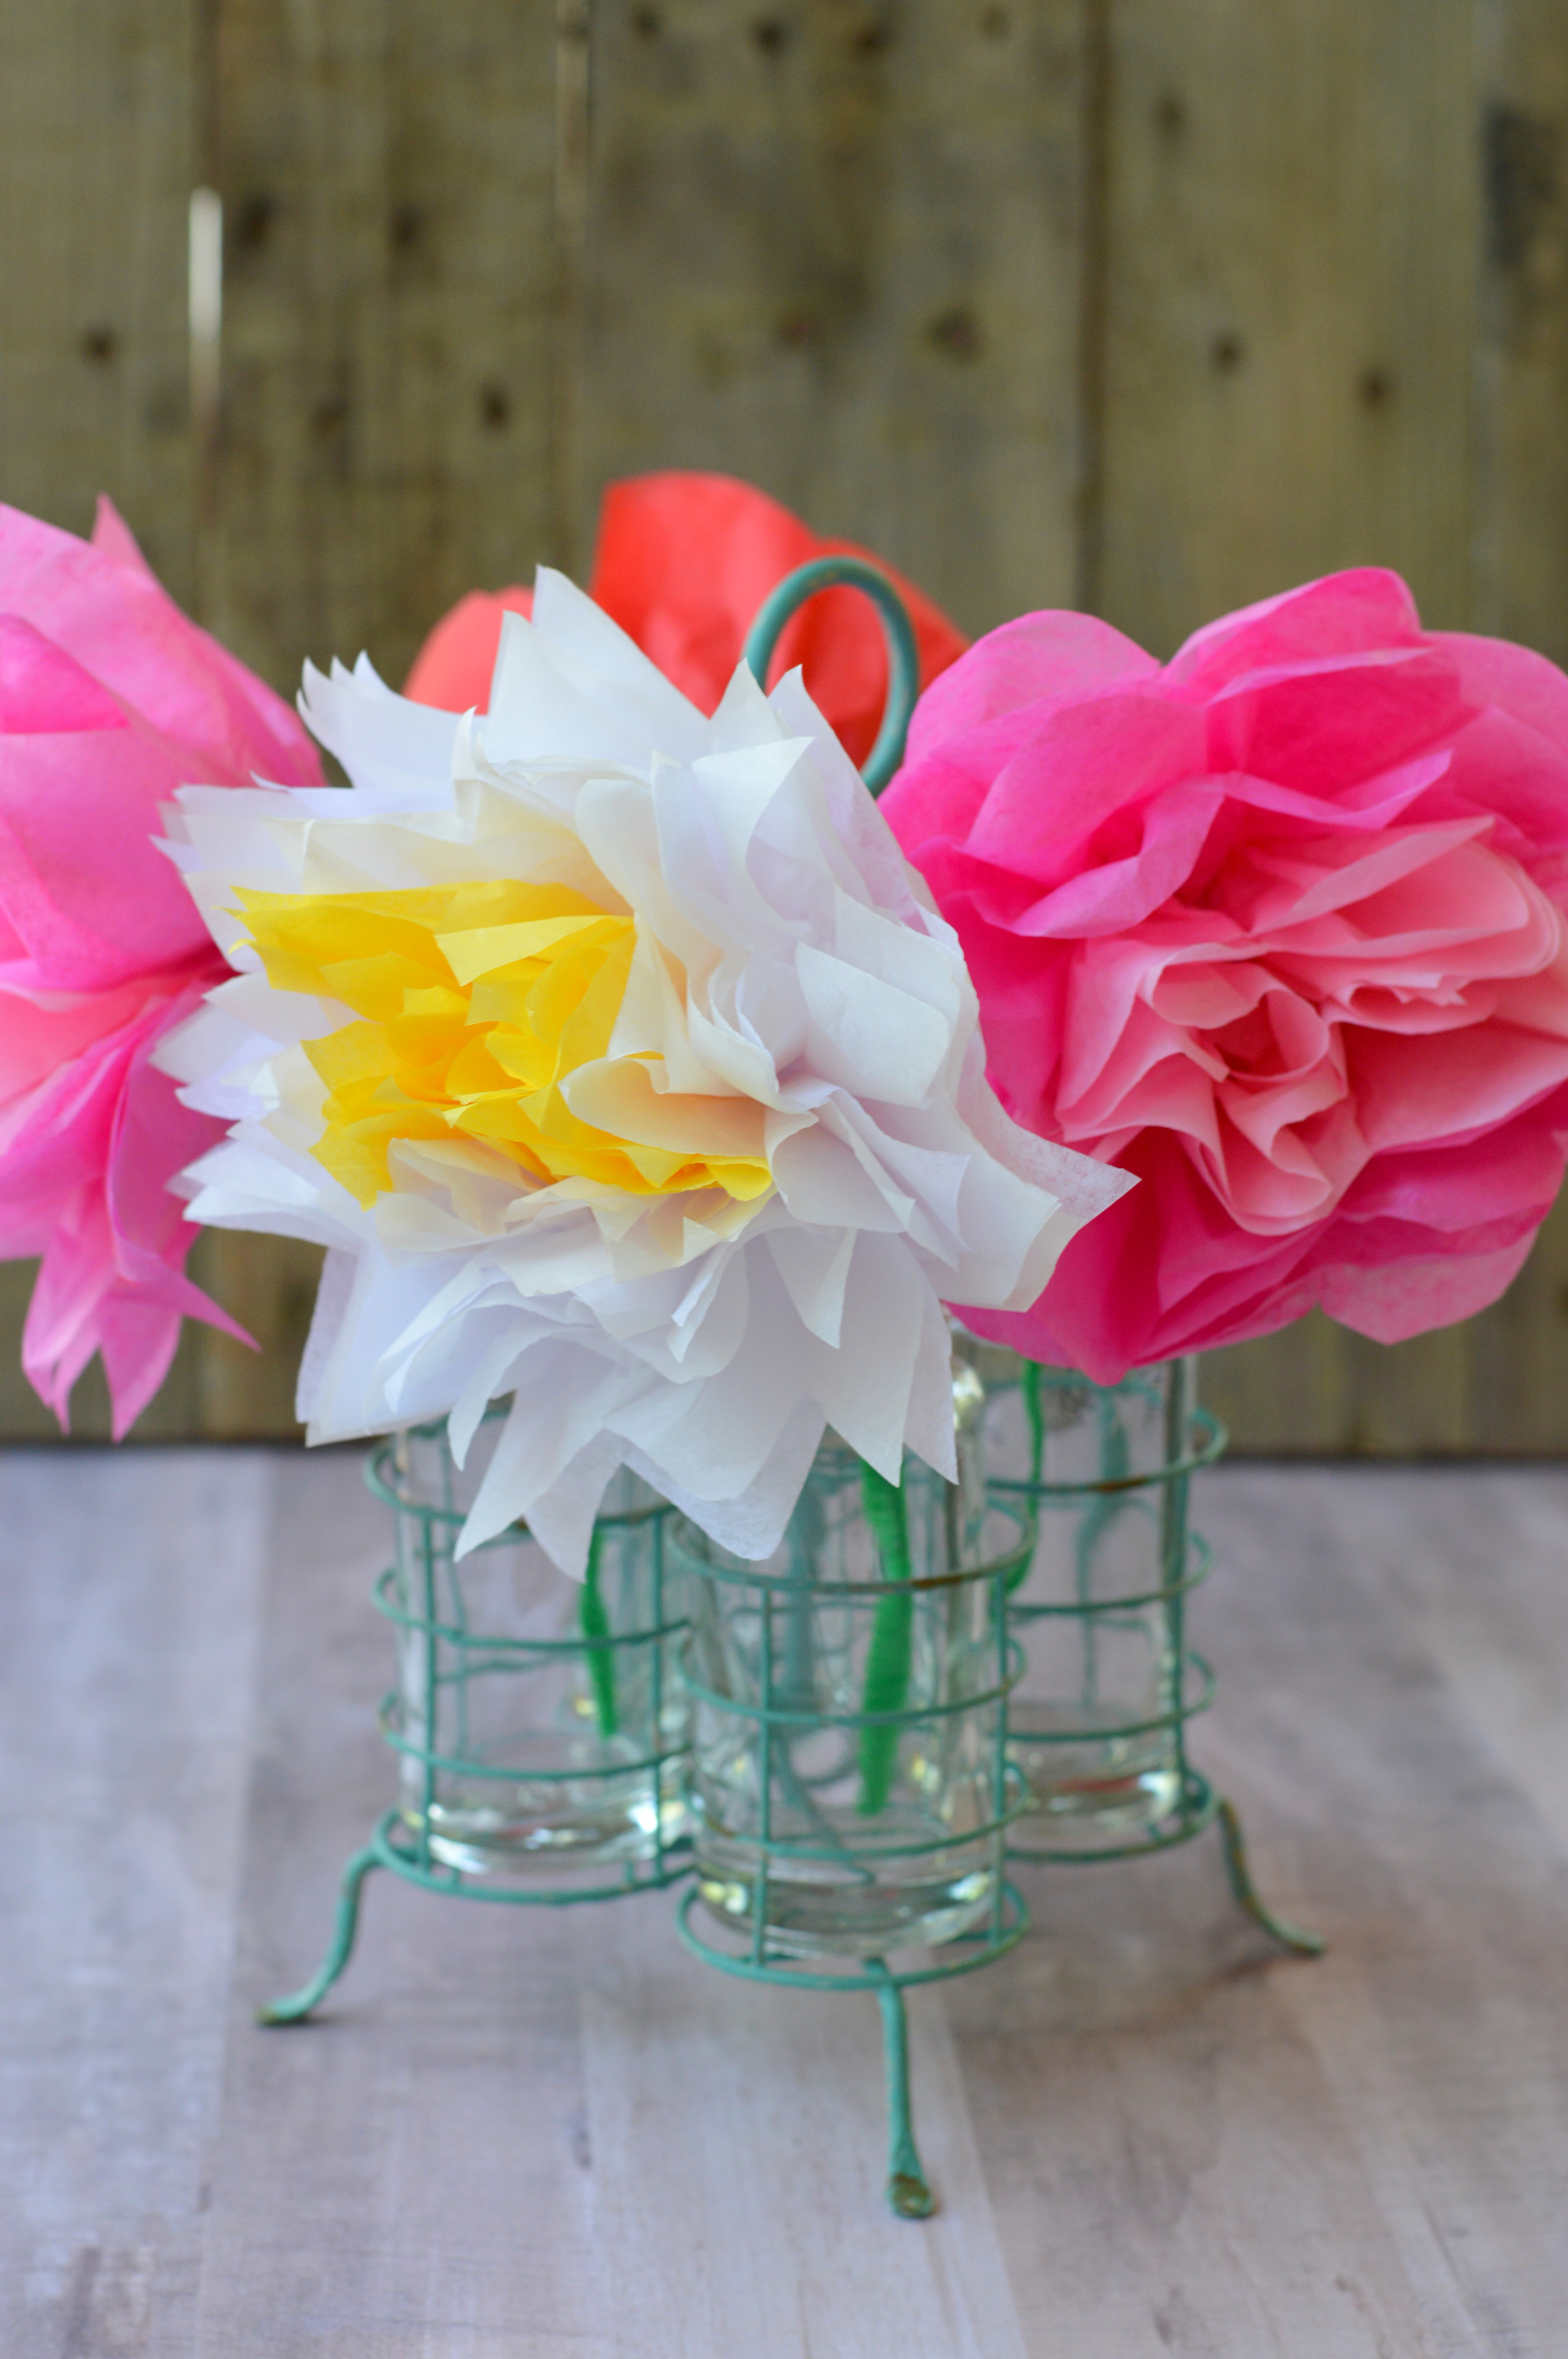 Tissue Paper Flowers For Mother S Day My Big Fat Happy Life